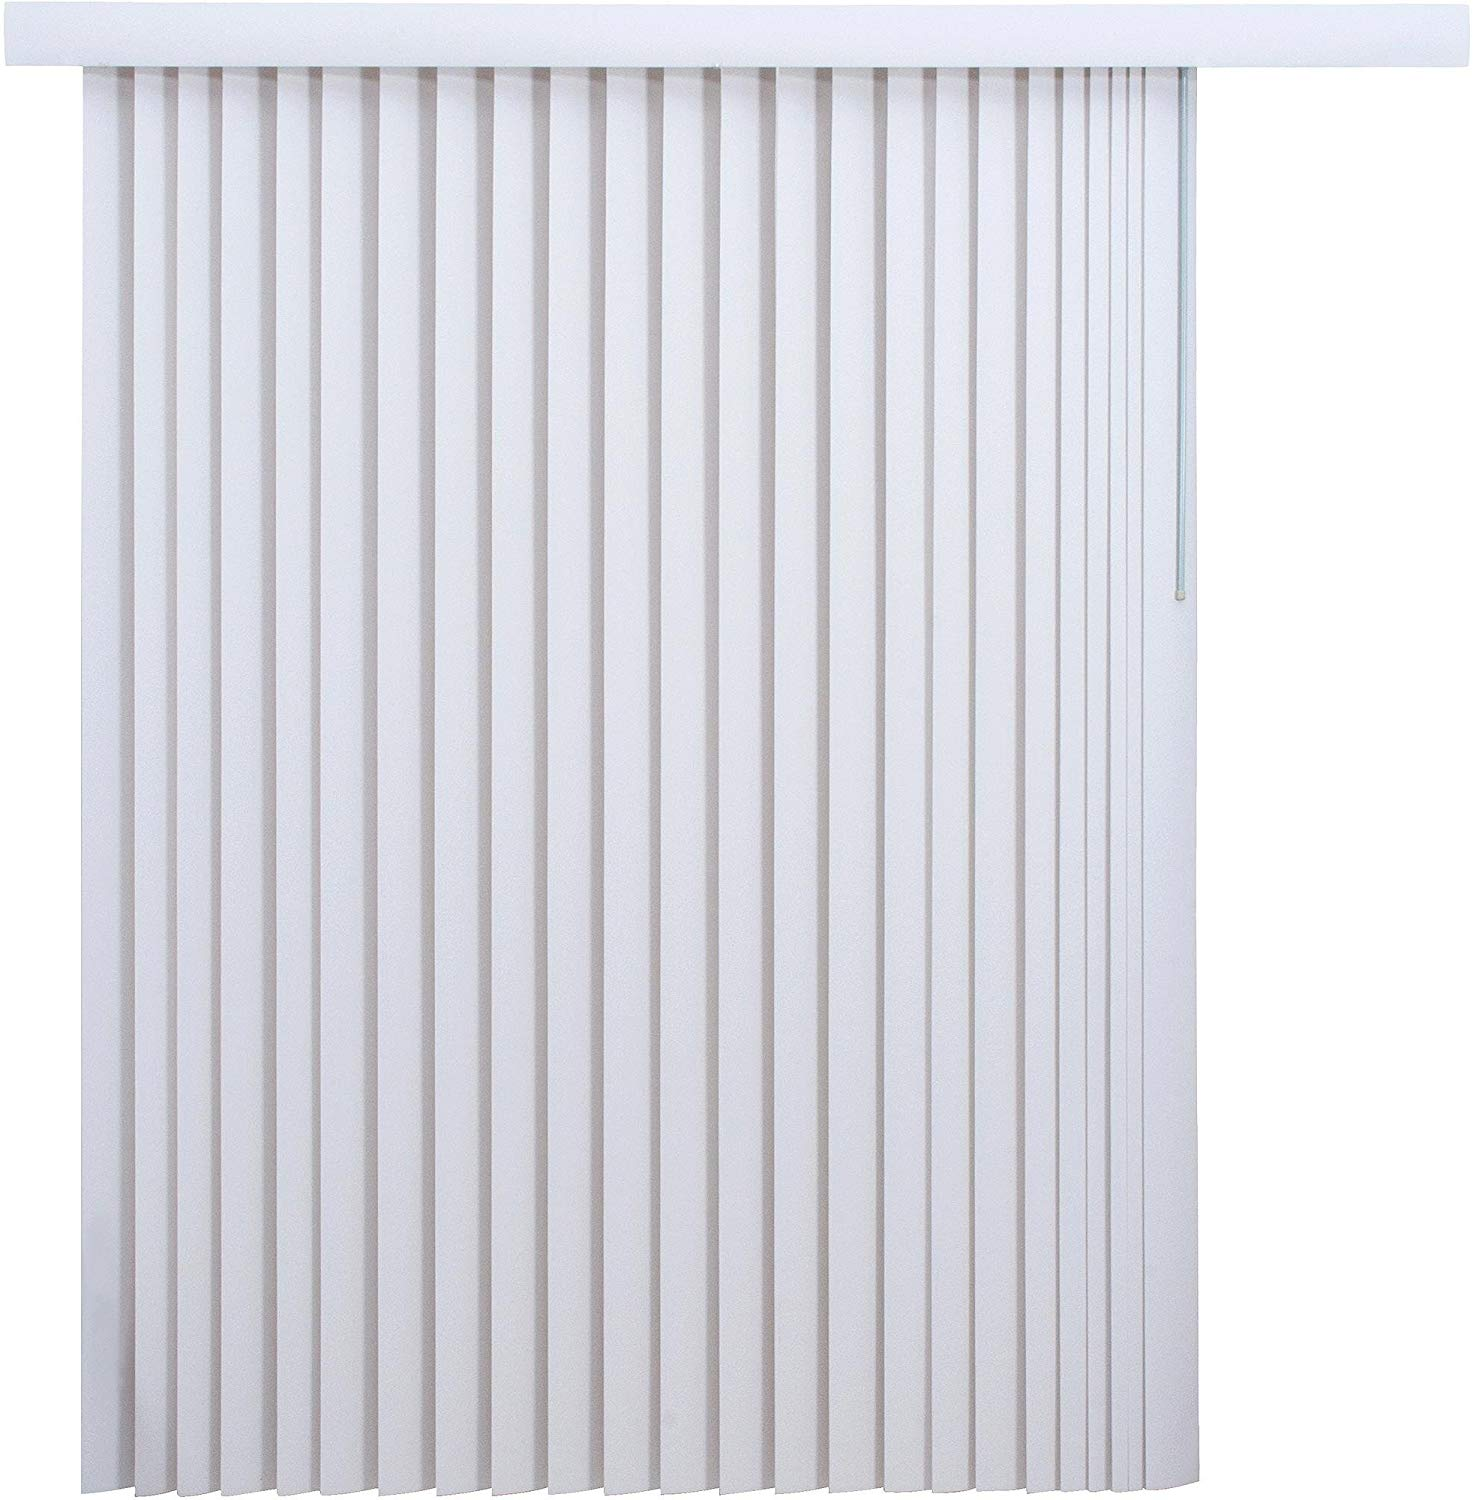 Mainstay 78 x 84 Vertical Blinds, (1, White)